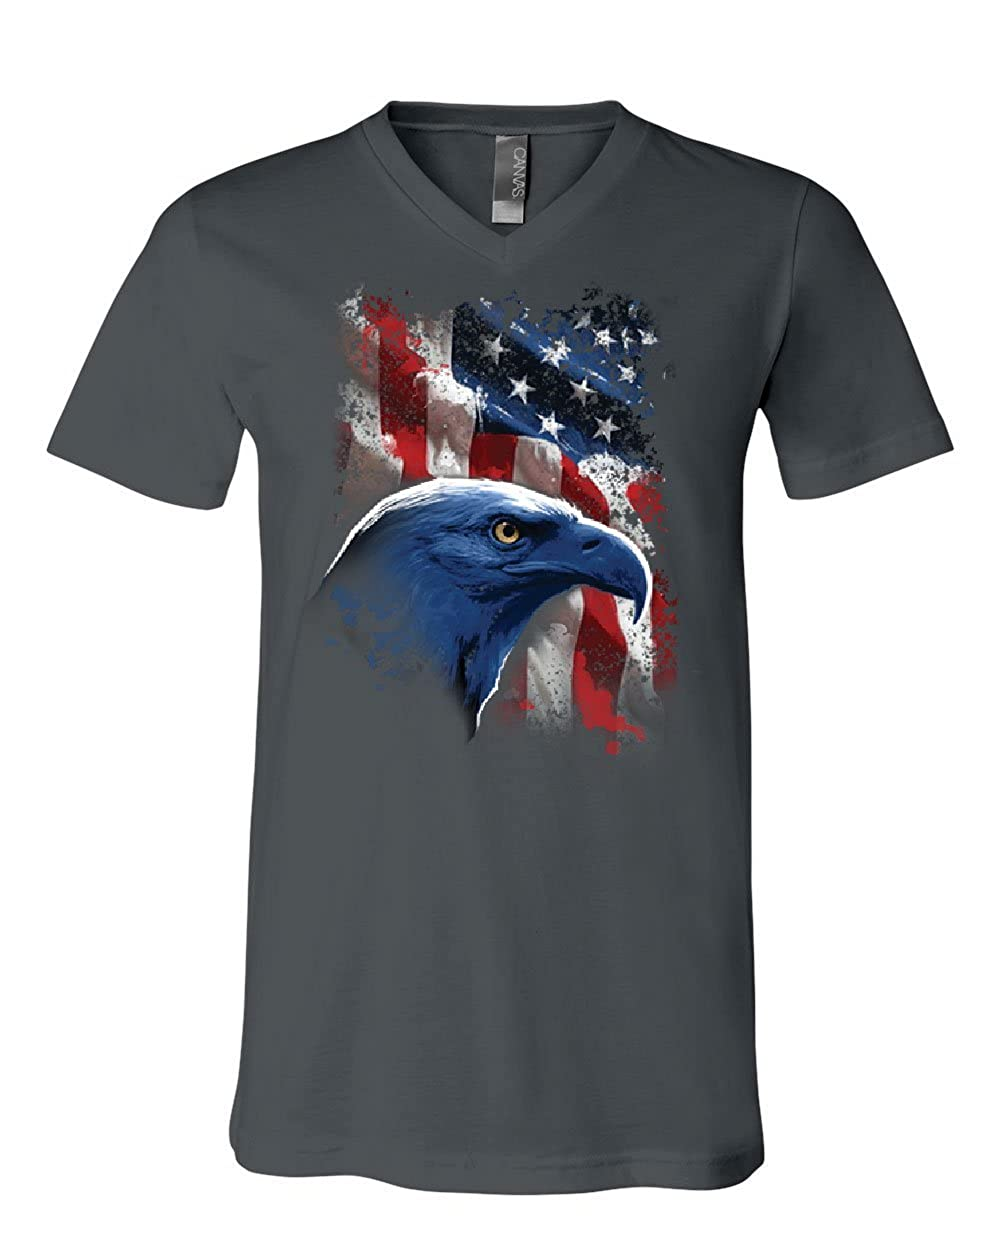 American Bald Eagle V-Neck T-Shirt American Flag 4th of July Patriotic Tee